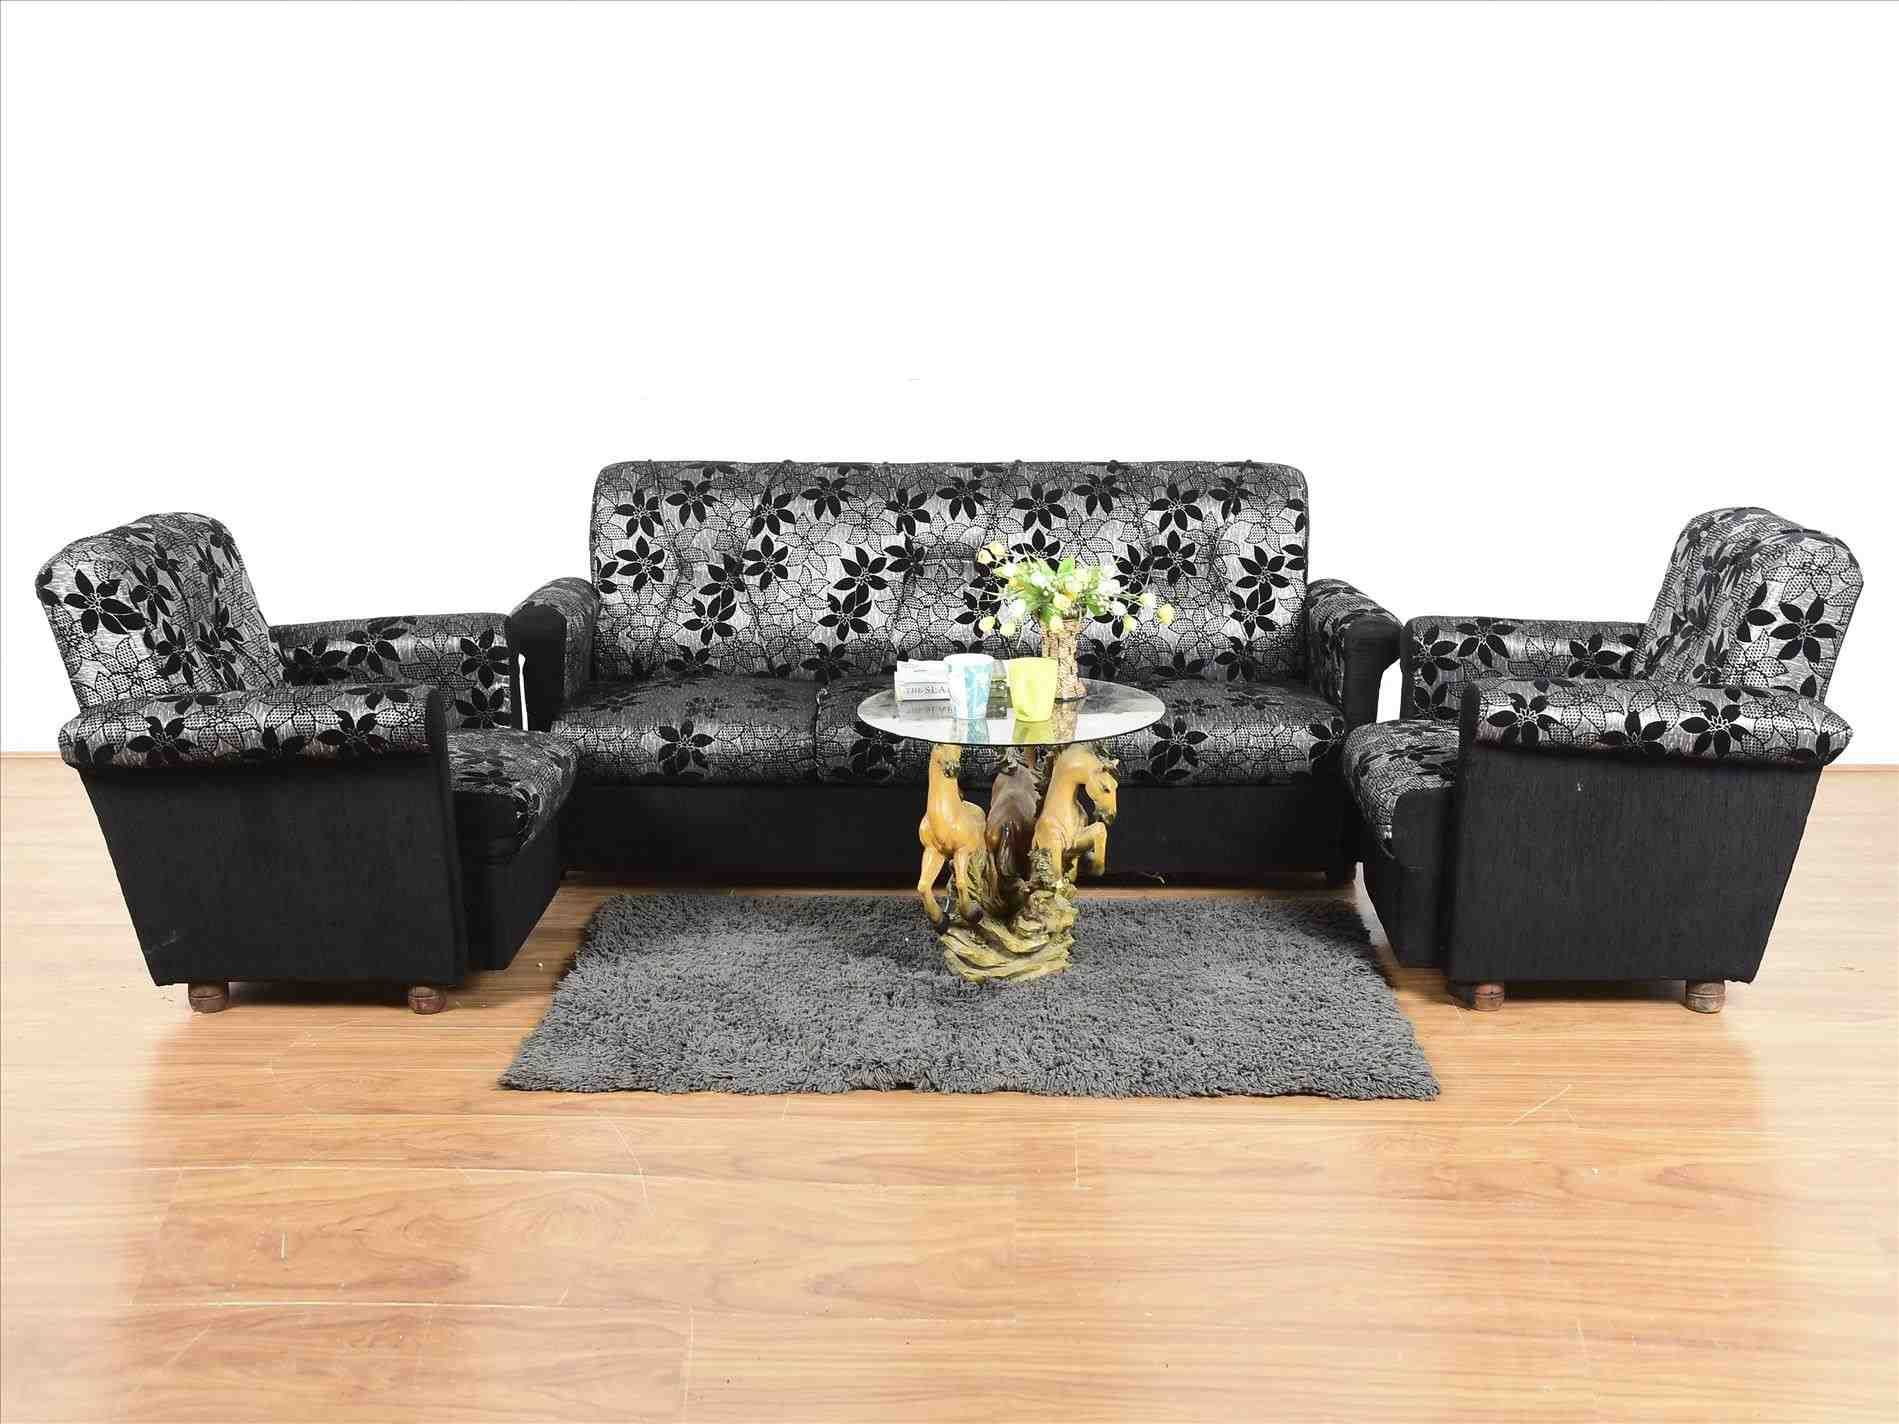 Recliner Sofa Kirti Nagar Buy Sofa Set Full Size Of Sofa Couches Buy Sofa Online Sofa Set